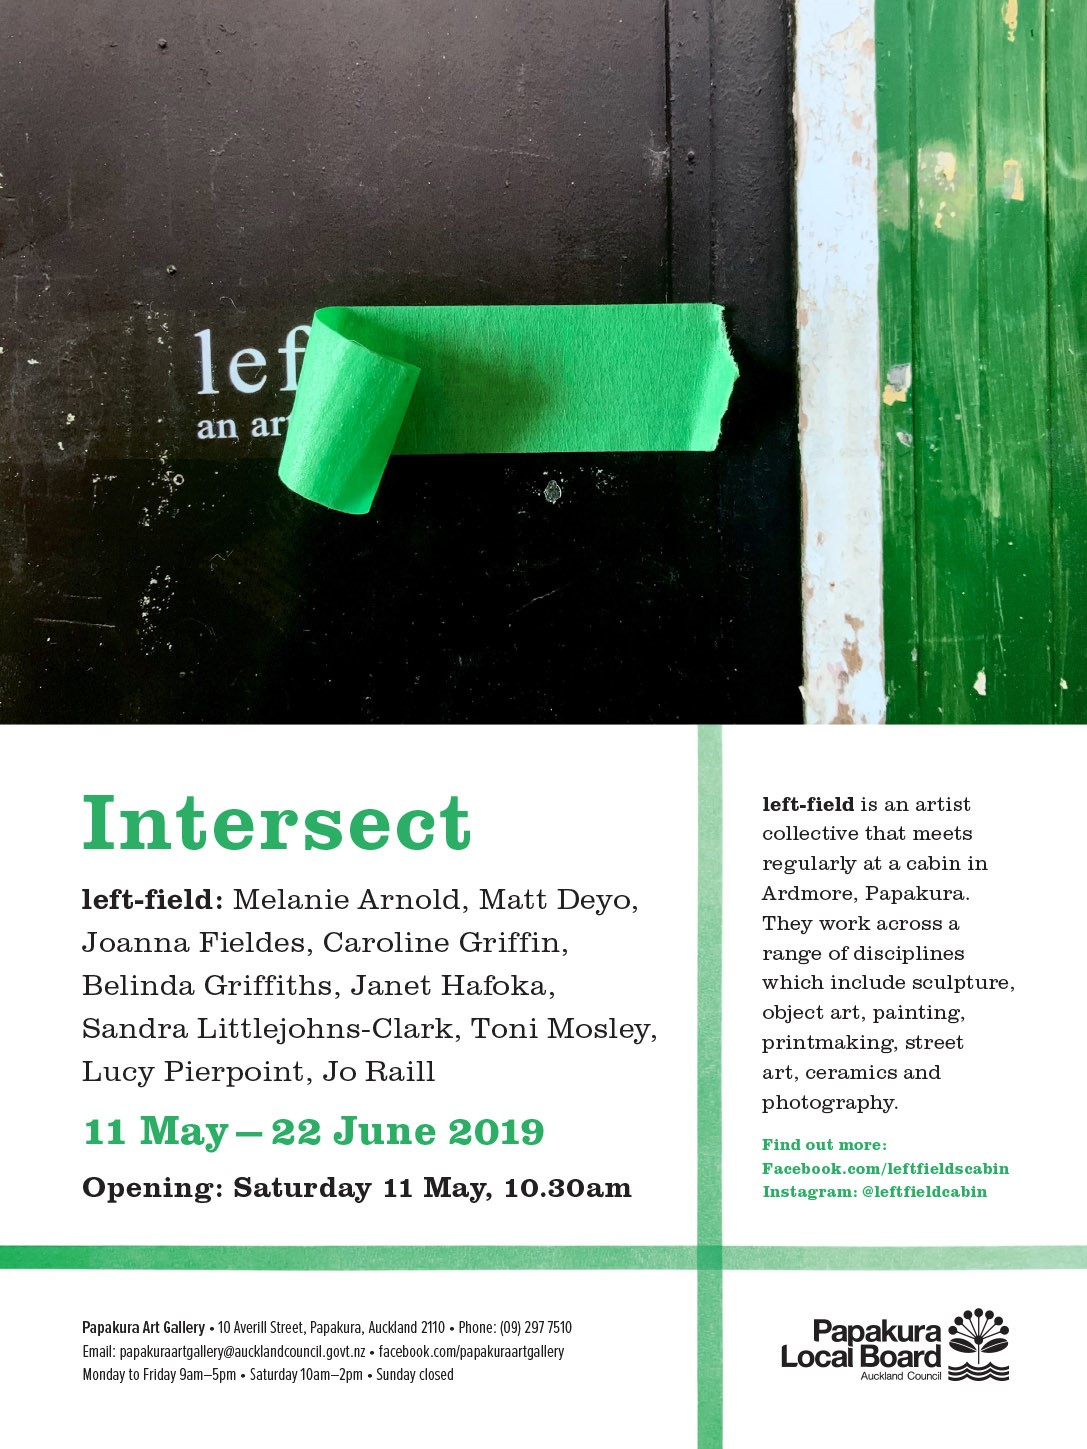 Invitation from Joanna Fieldes to left field group art exhibition opening